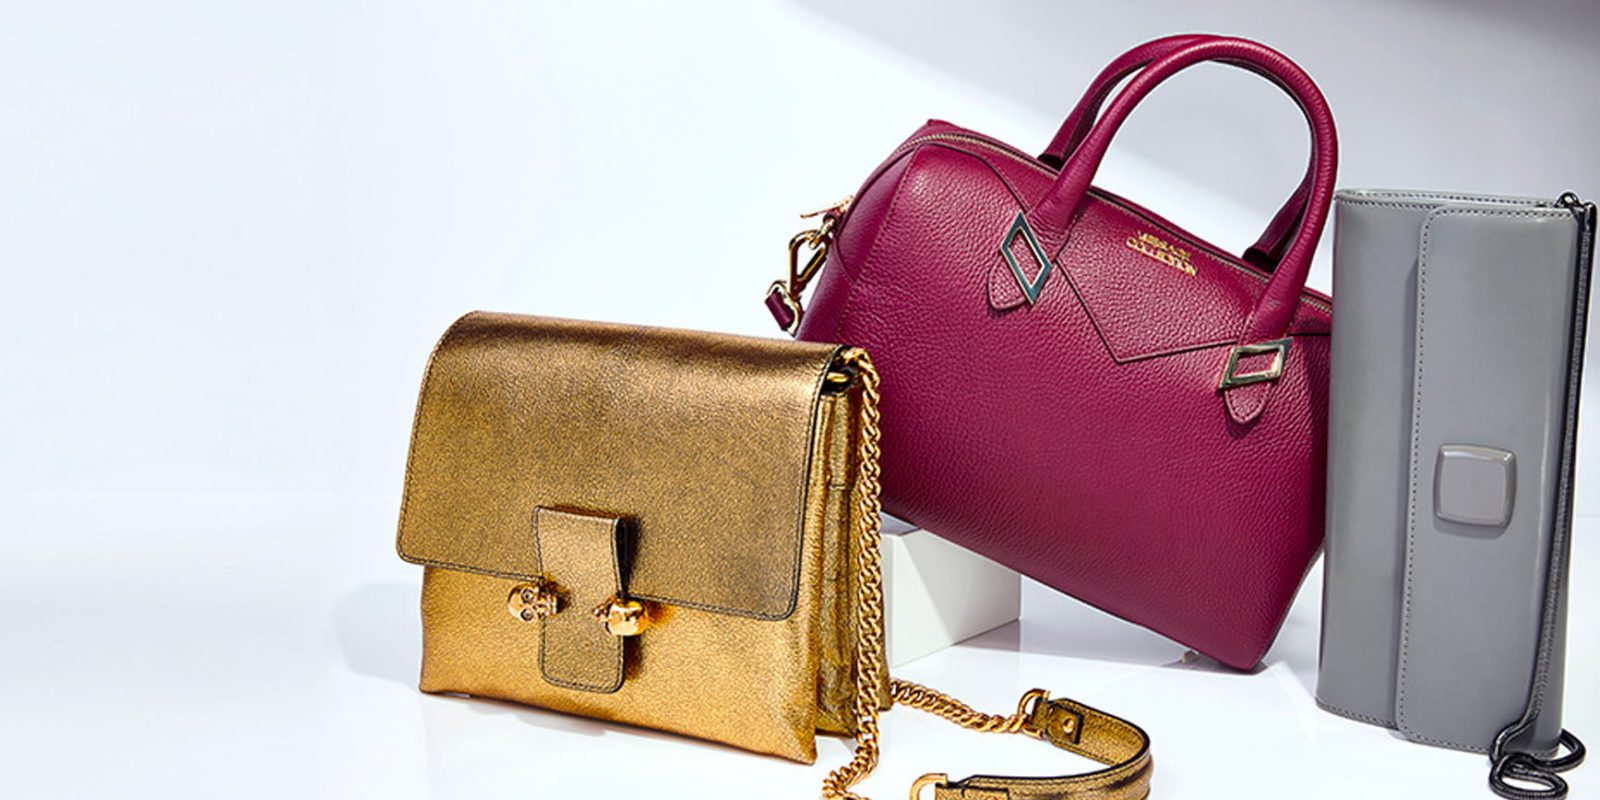 d5db666f9 Nordstrom Rack's Designer Sale takes up to 60% off handbags, shoes,  clothing & more